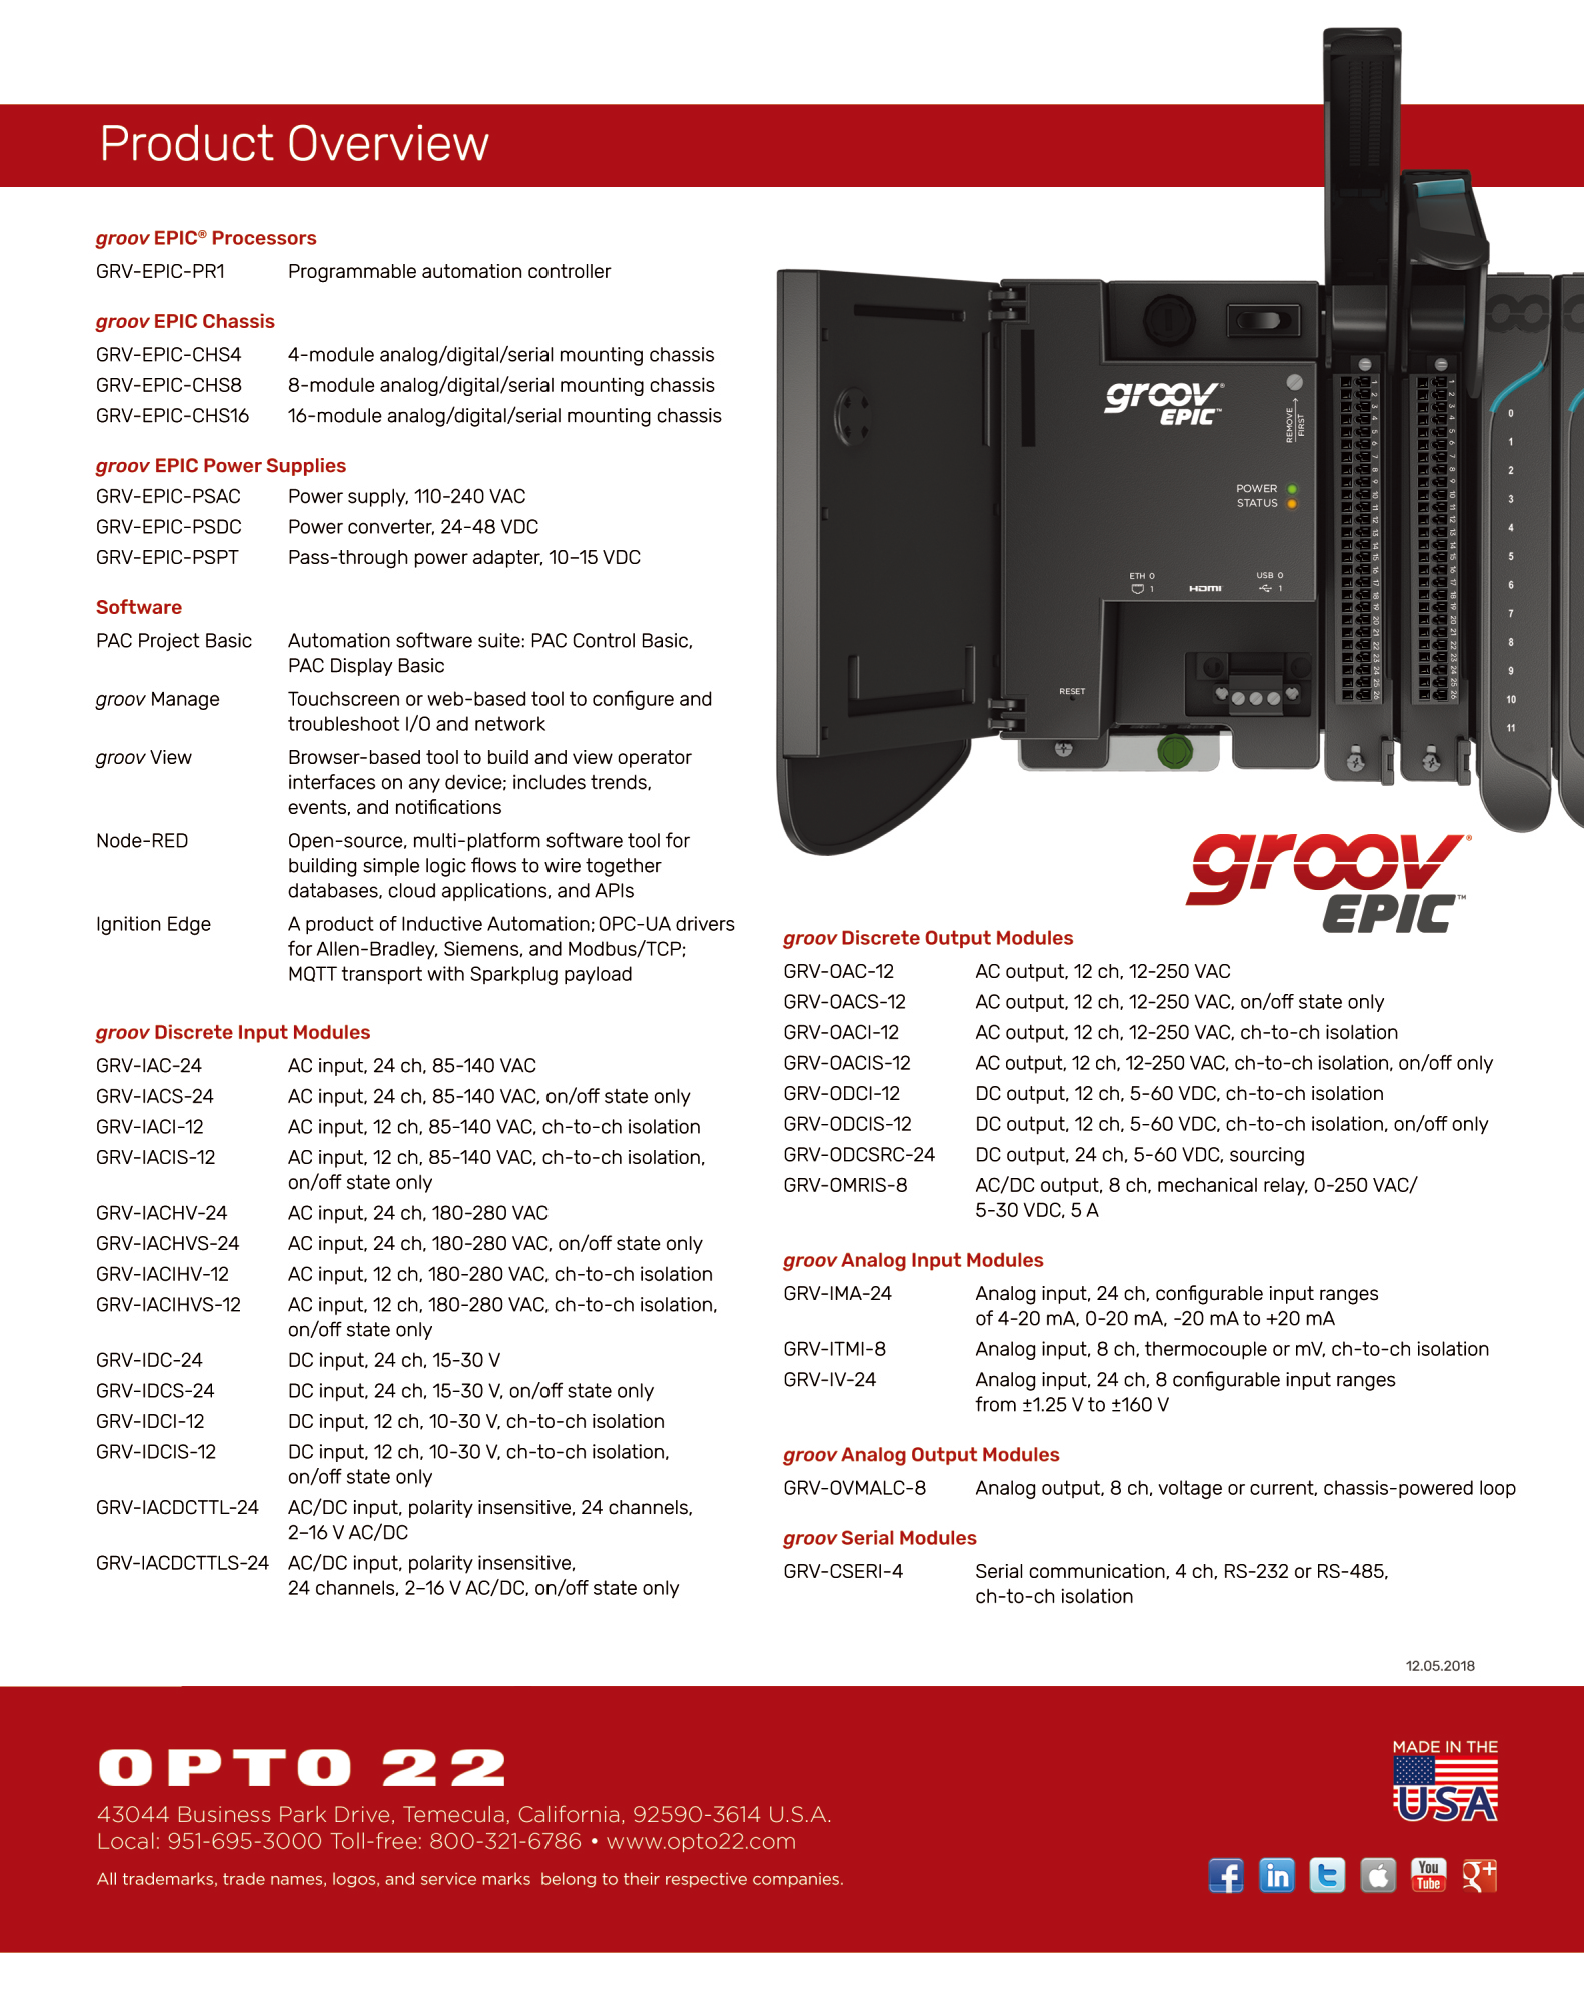 groovEPIC_8Pg_Brochure_Web-中文版_页面_5